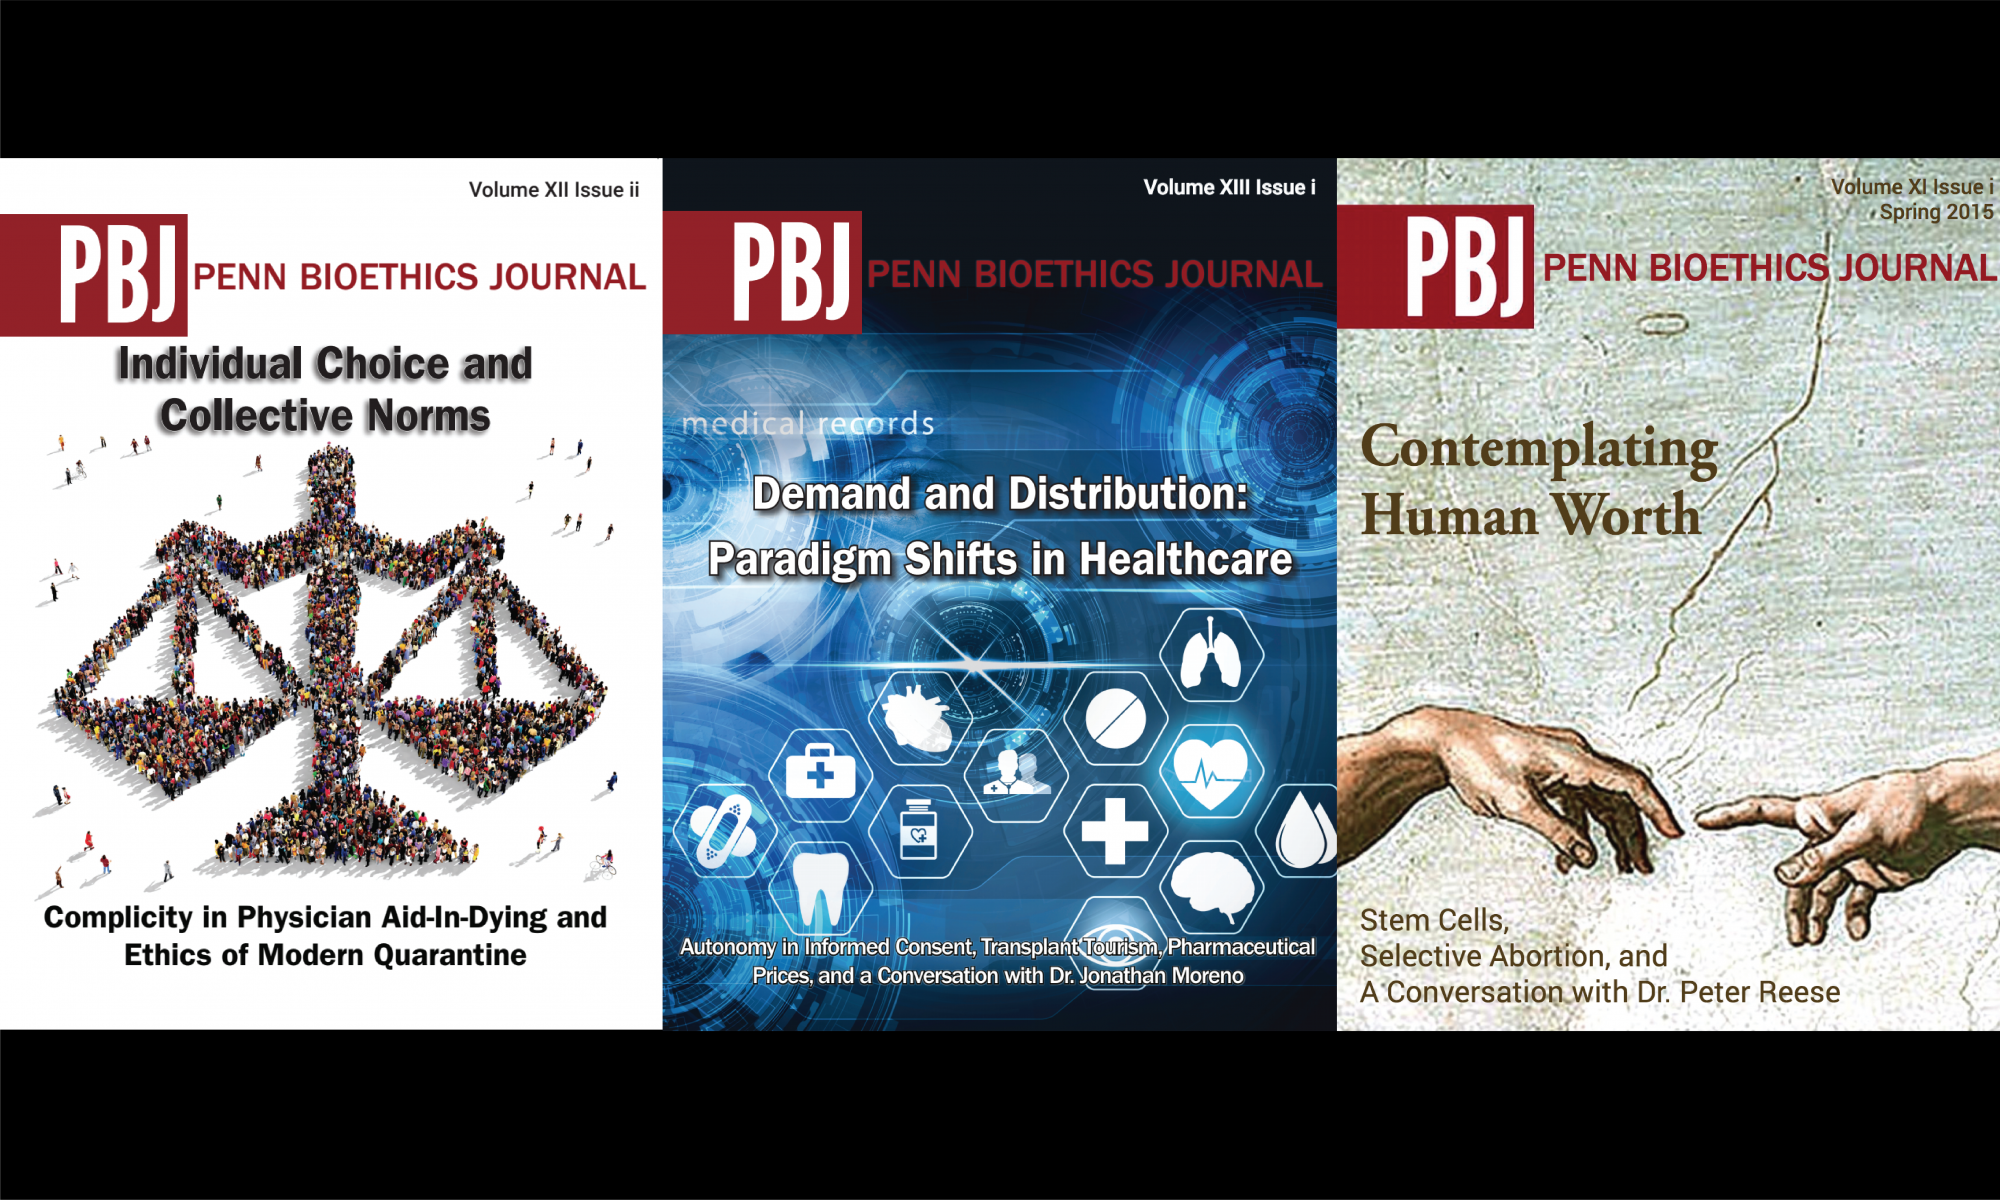 Penn Bioethics Journal